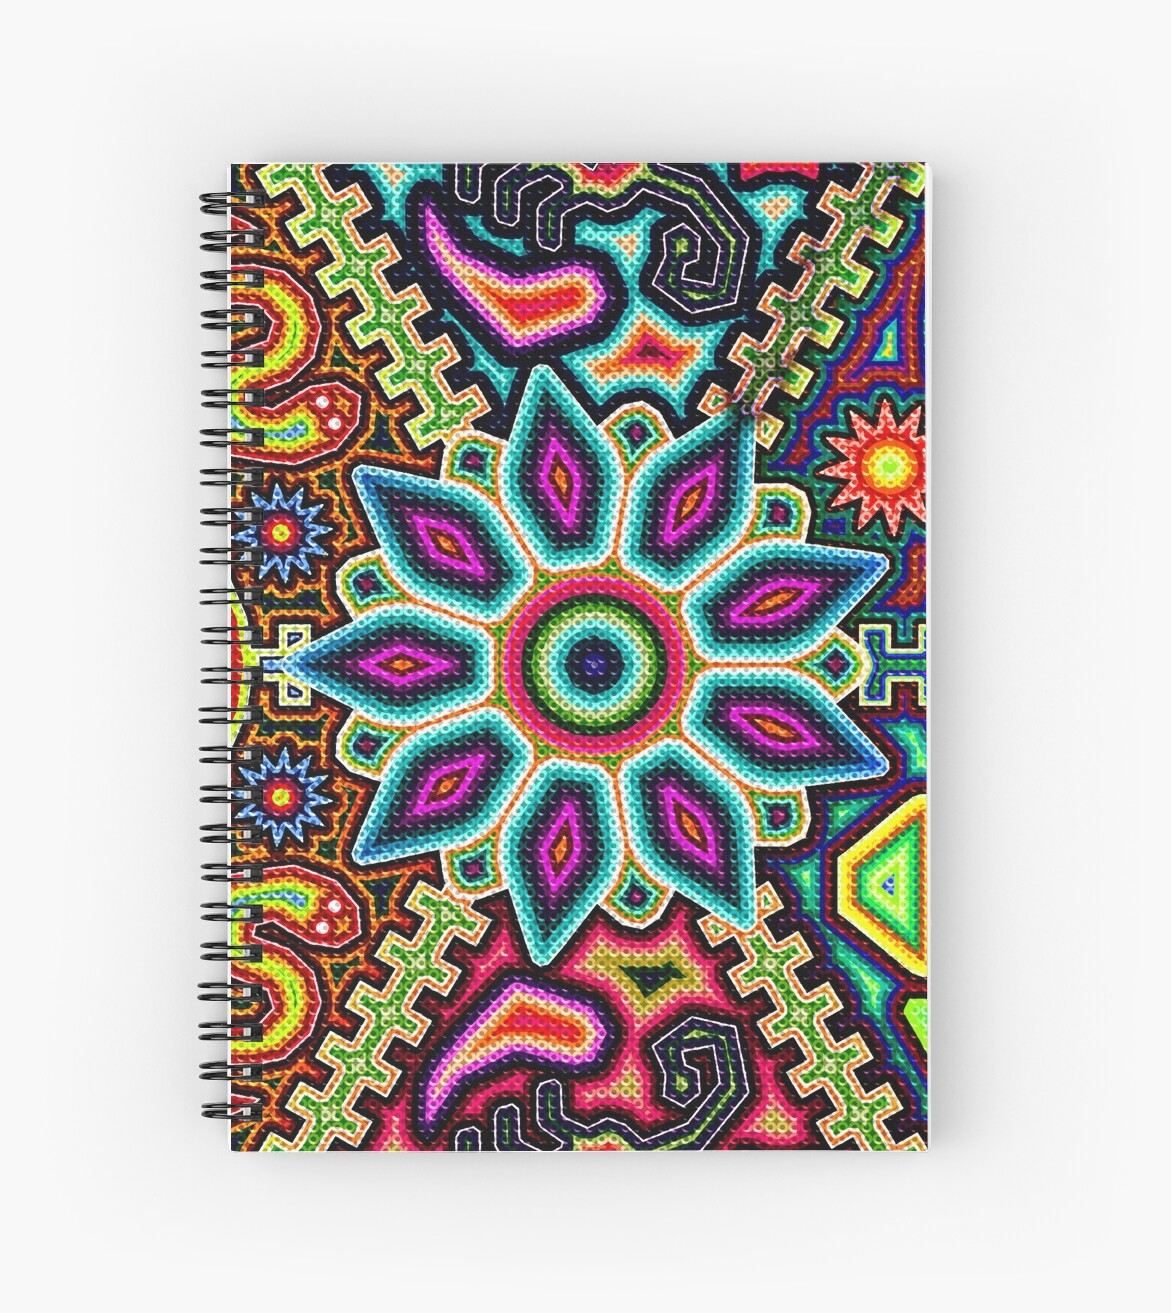 Arte Huichol Hd Huichol Art Mexico Spiral Notebook By Sauher